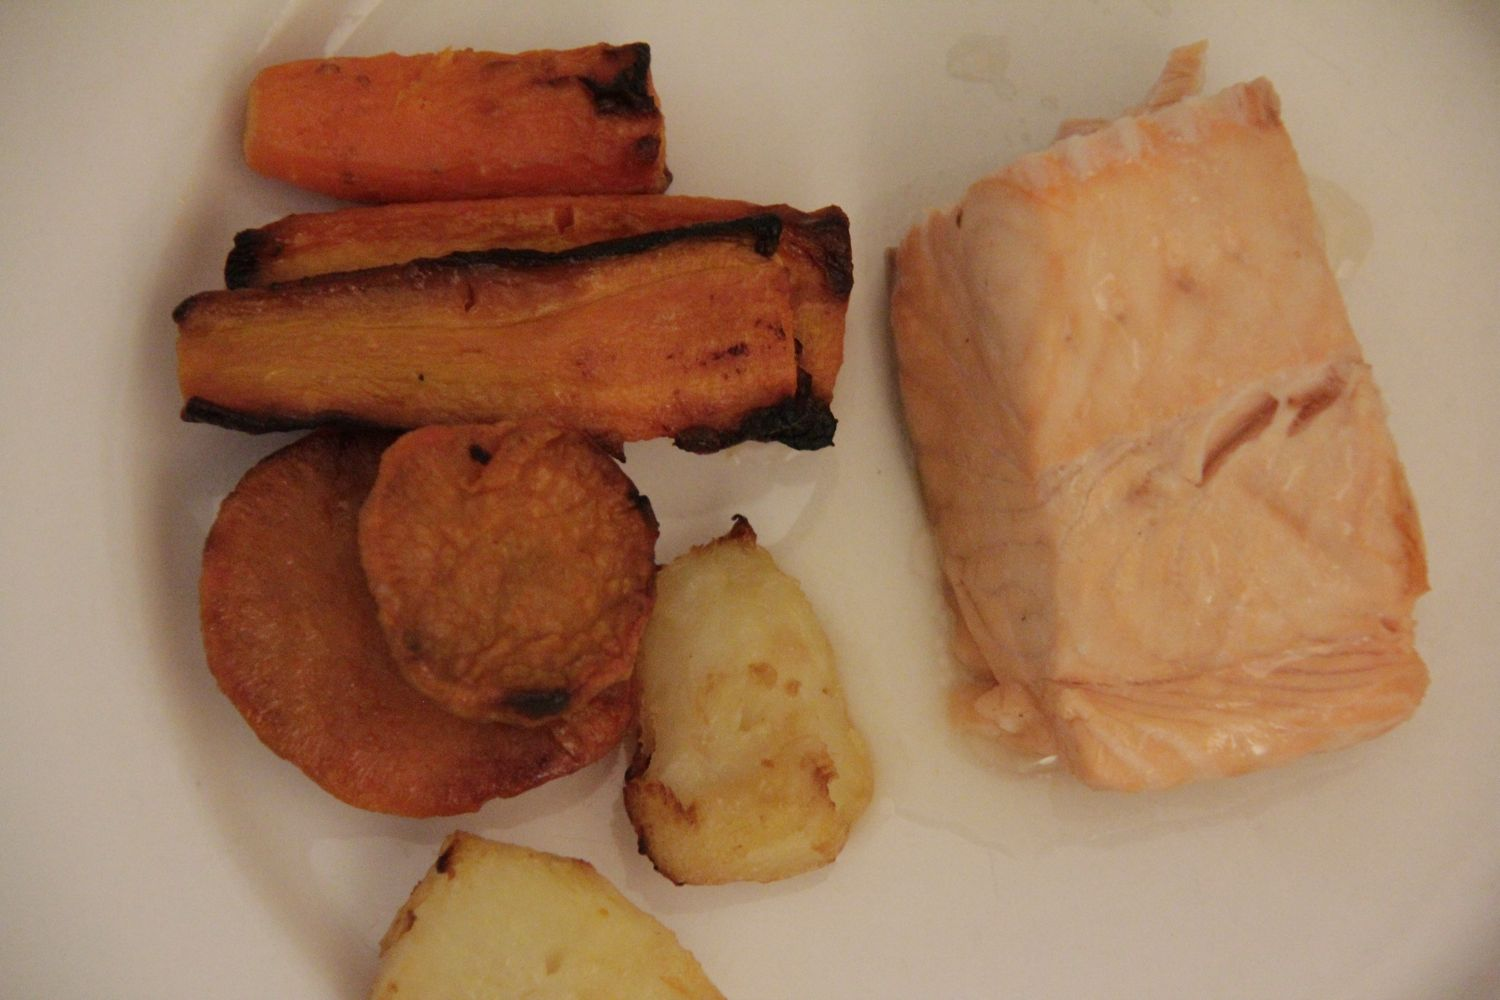 Oven baked salmon and roasted vegetables